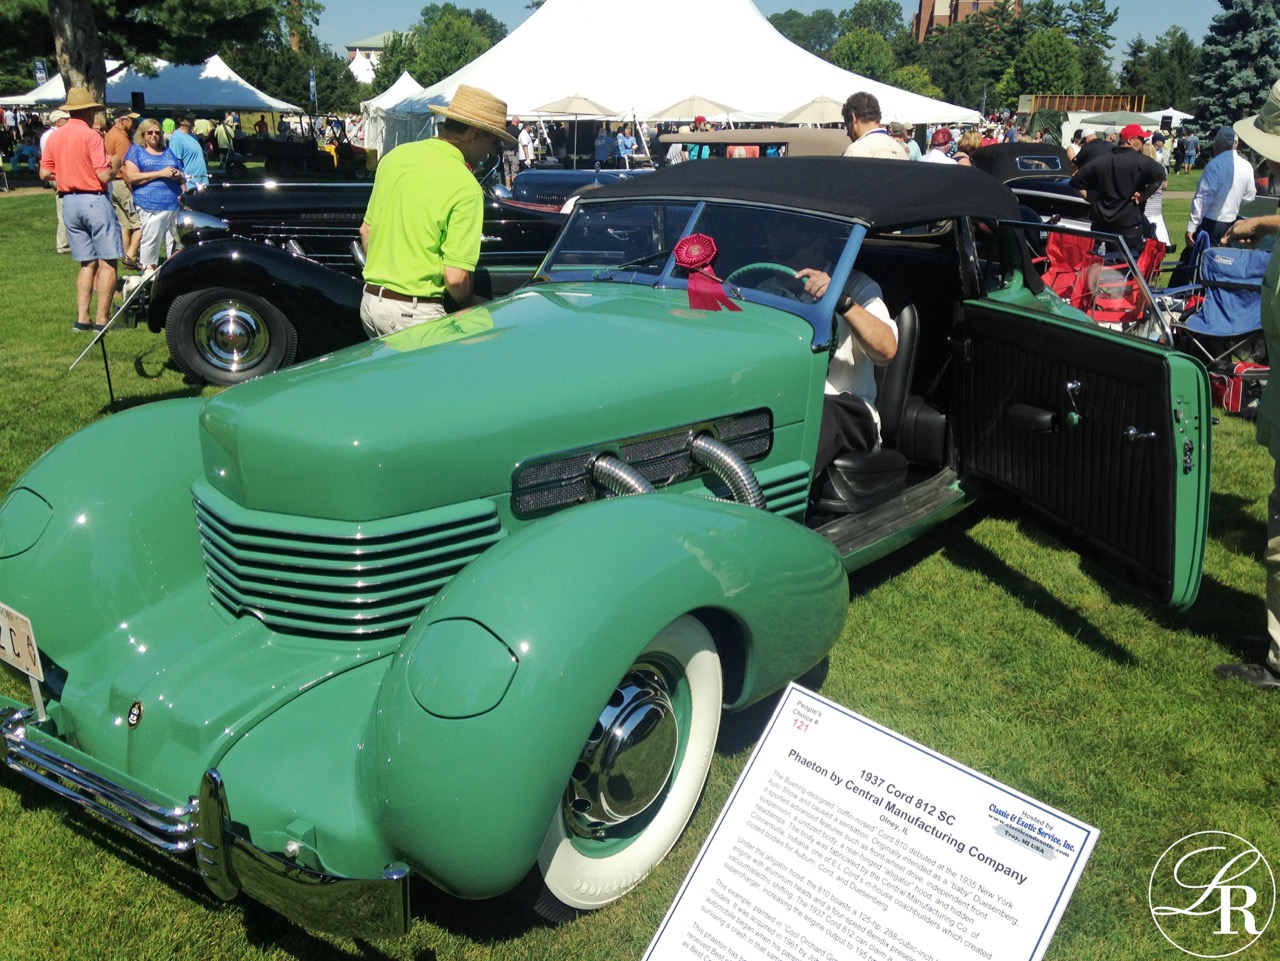 This LaVine Restorations restored 1937 Cord 812 Supercharged Phaeton took a Class Award in the ACD Class.